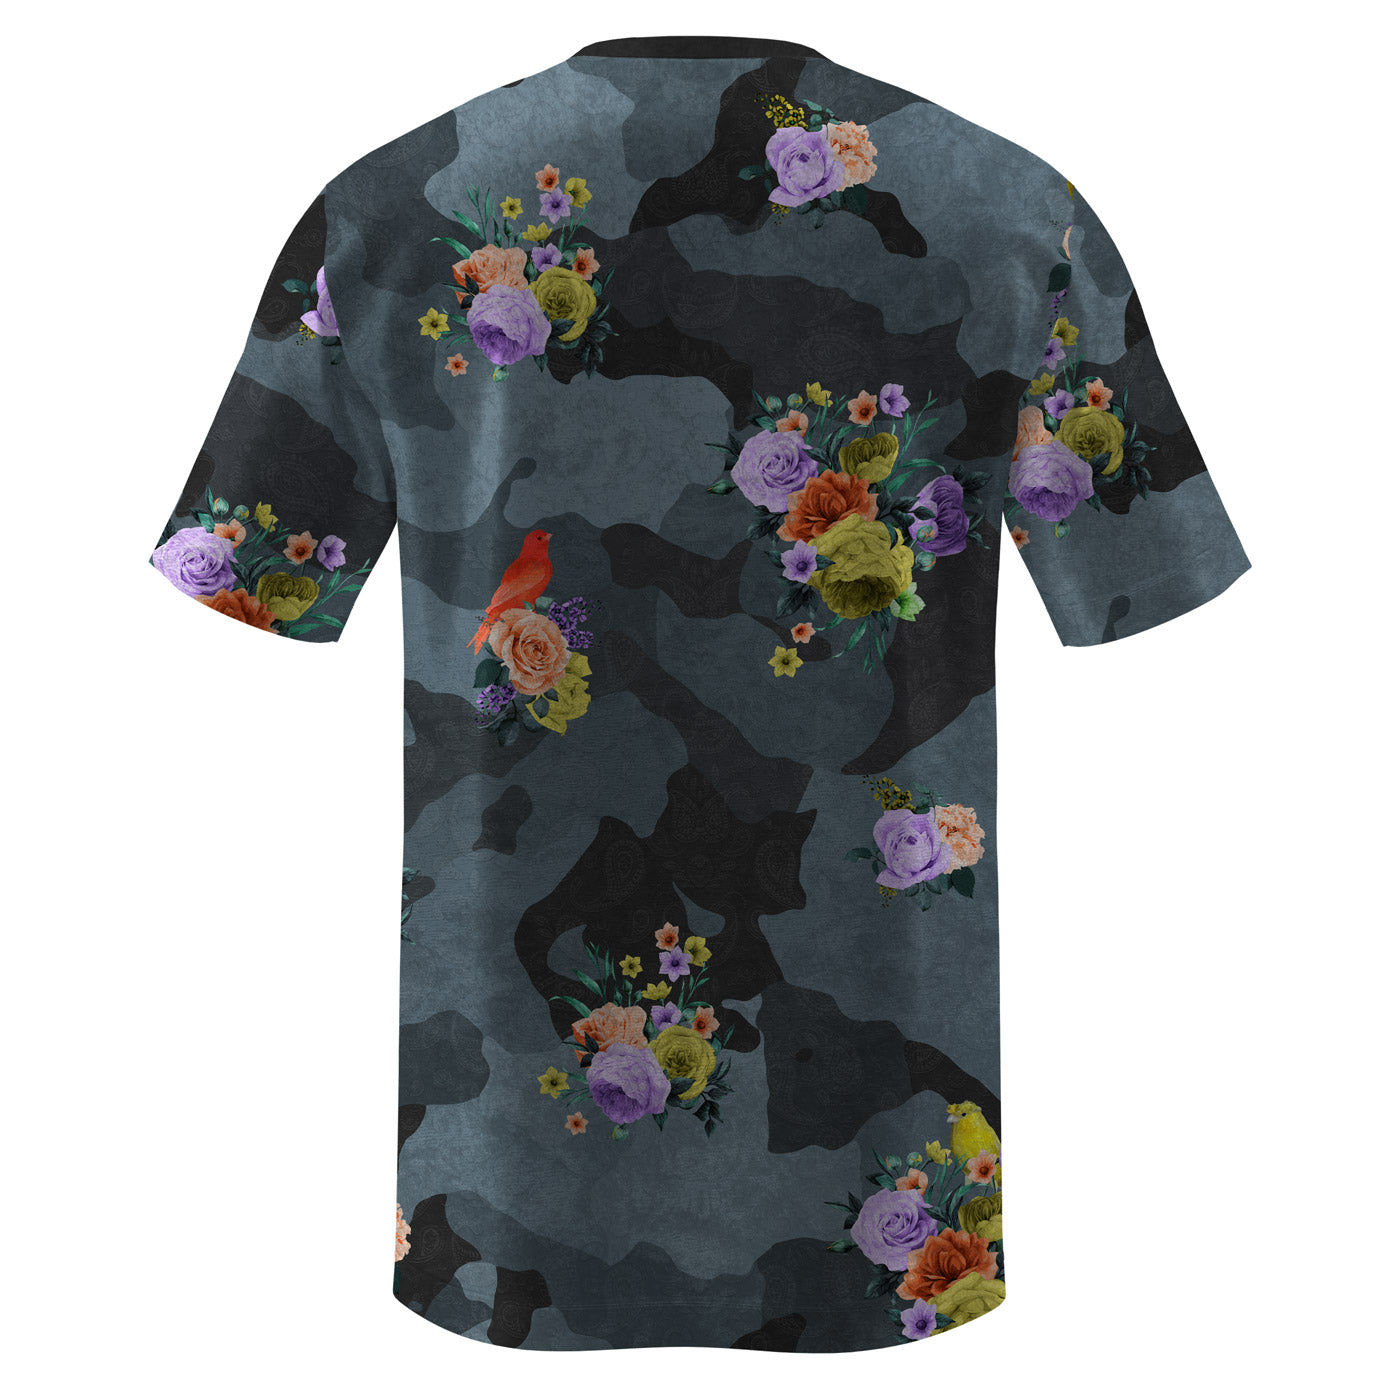 Camo Flower Crushed Velvet T-Shirt